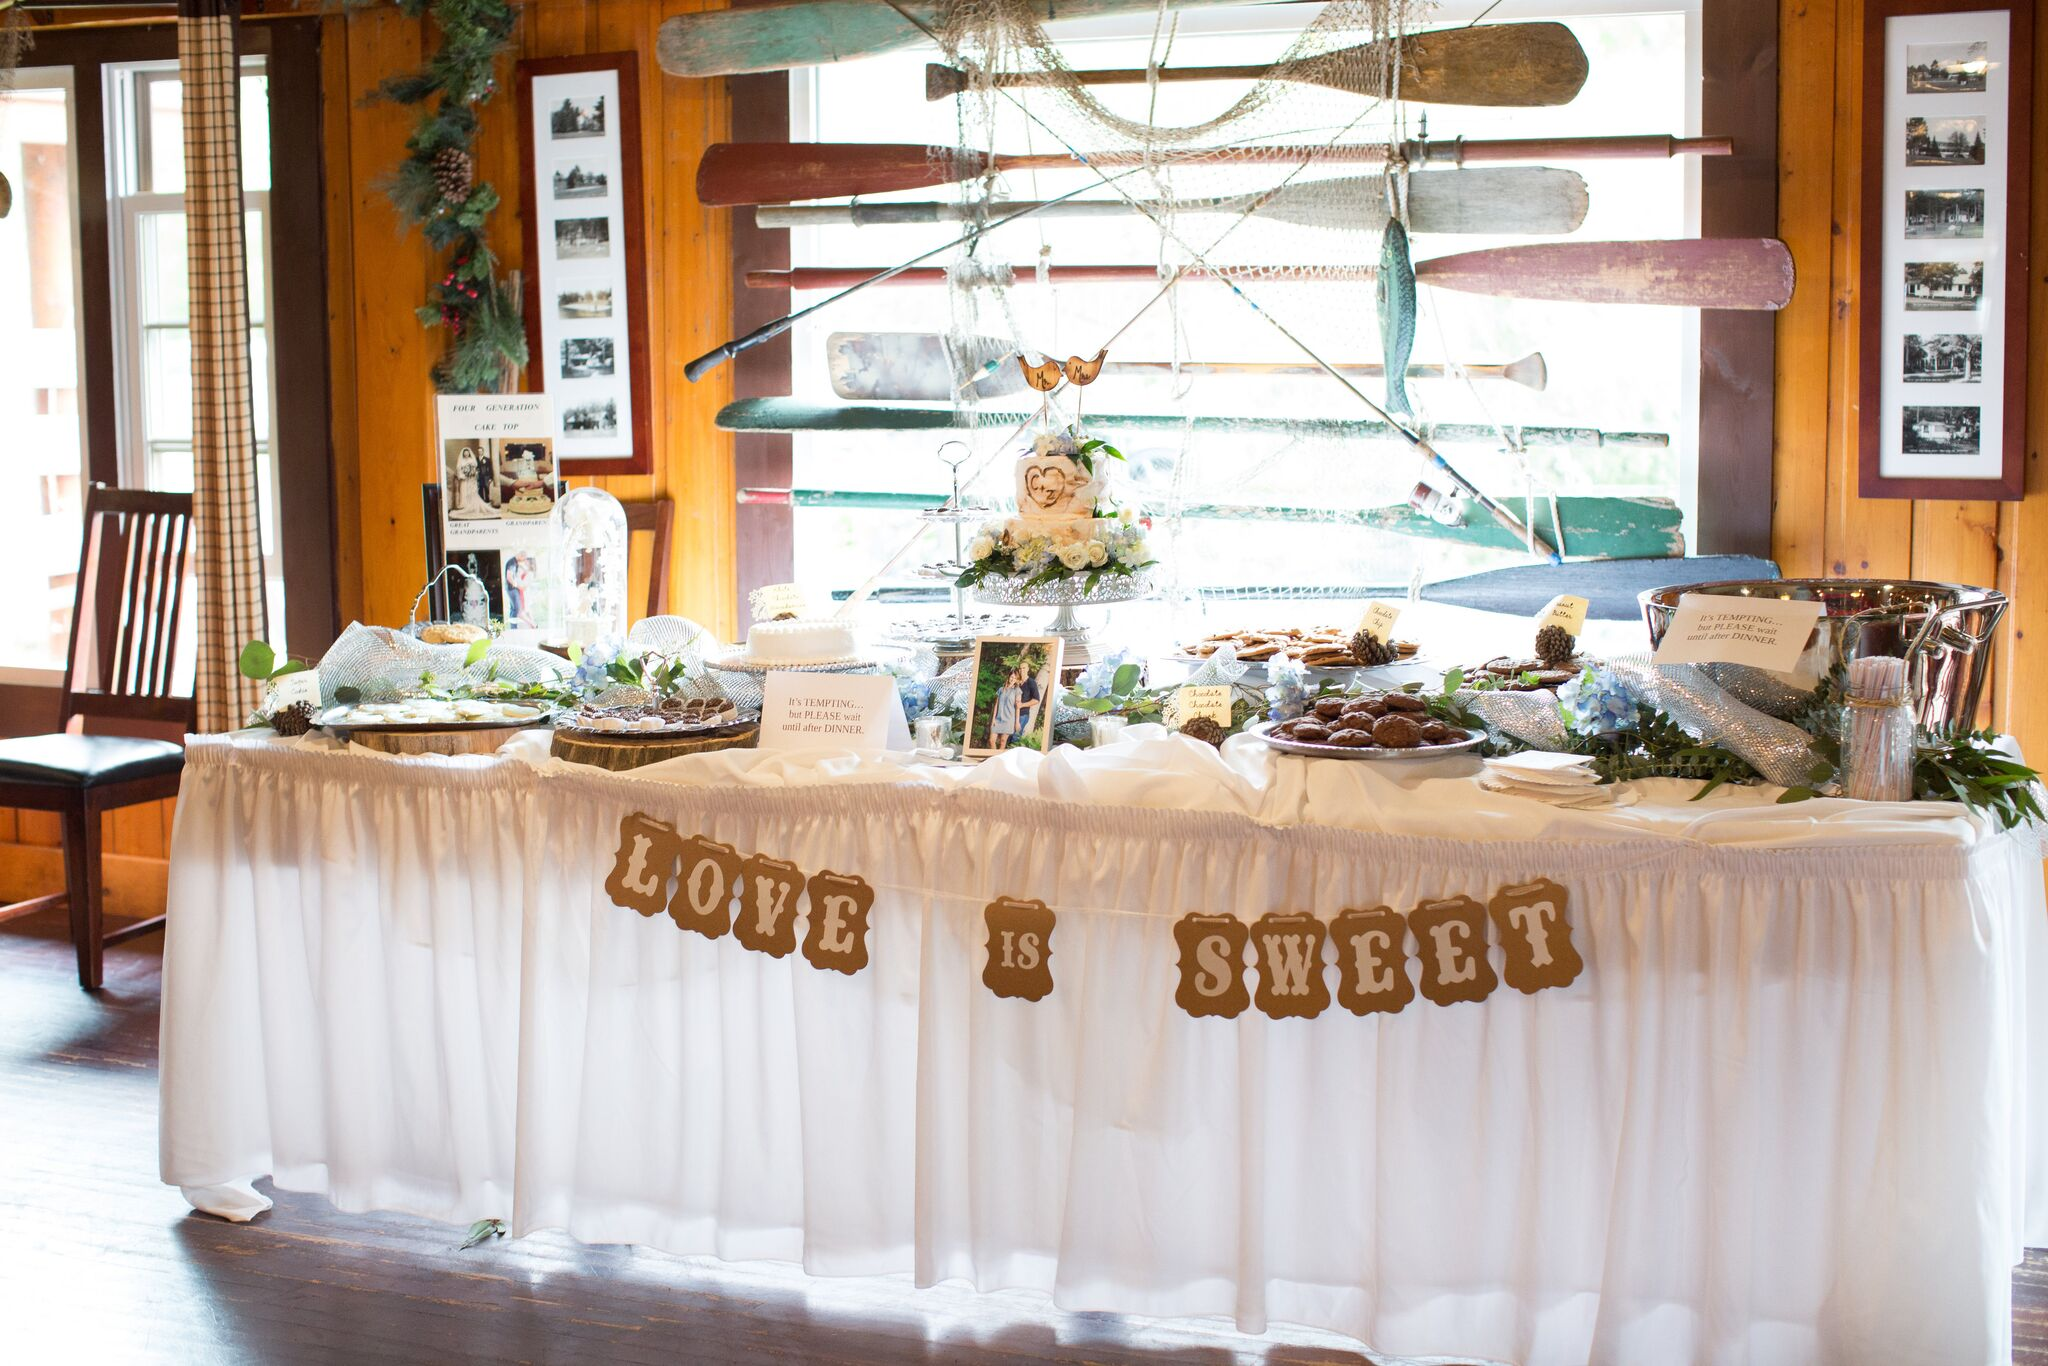 Traditional and rustic wedding at Scattering Rice Lake in Eagle River, WI by Brown Street Studios featured on Destination Wisconsin Wedding Blog